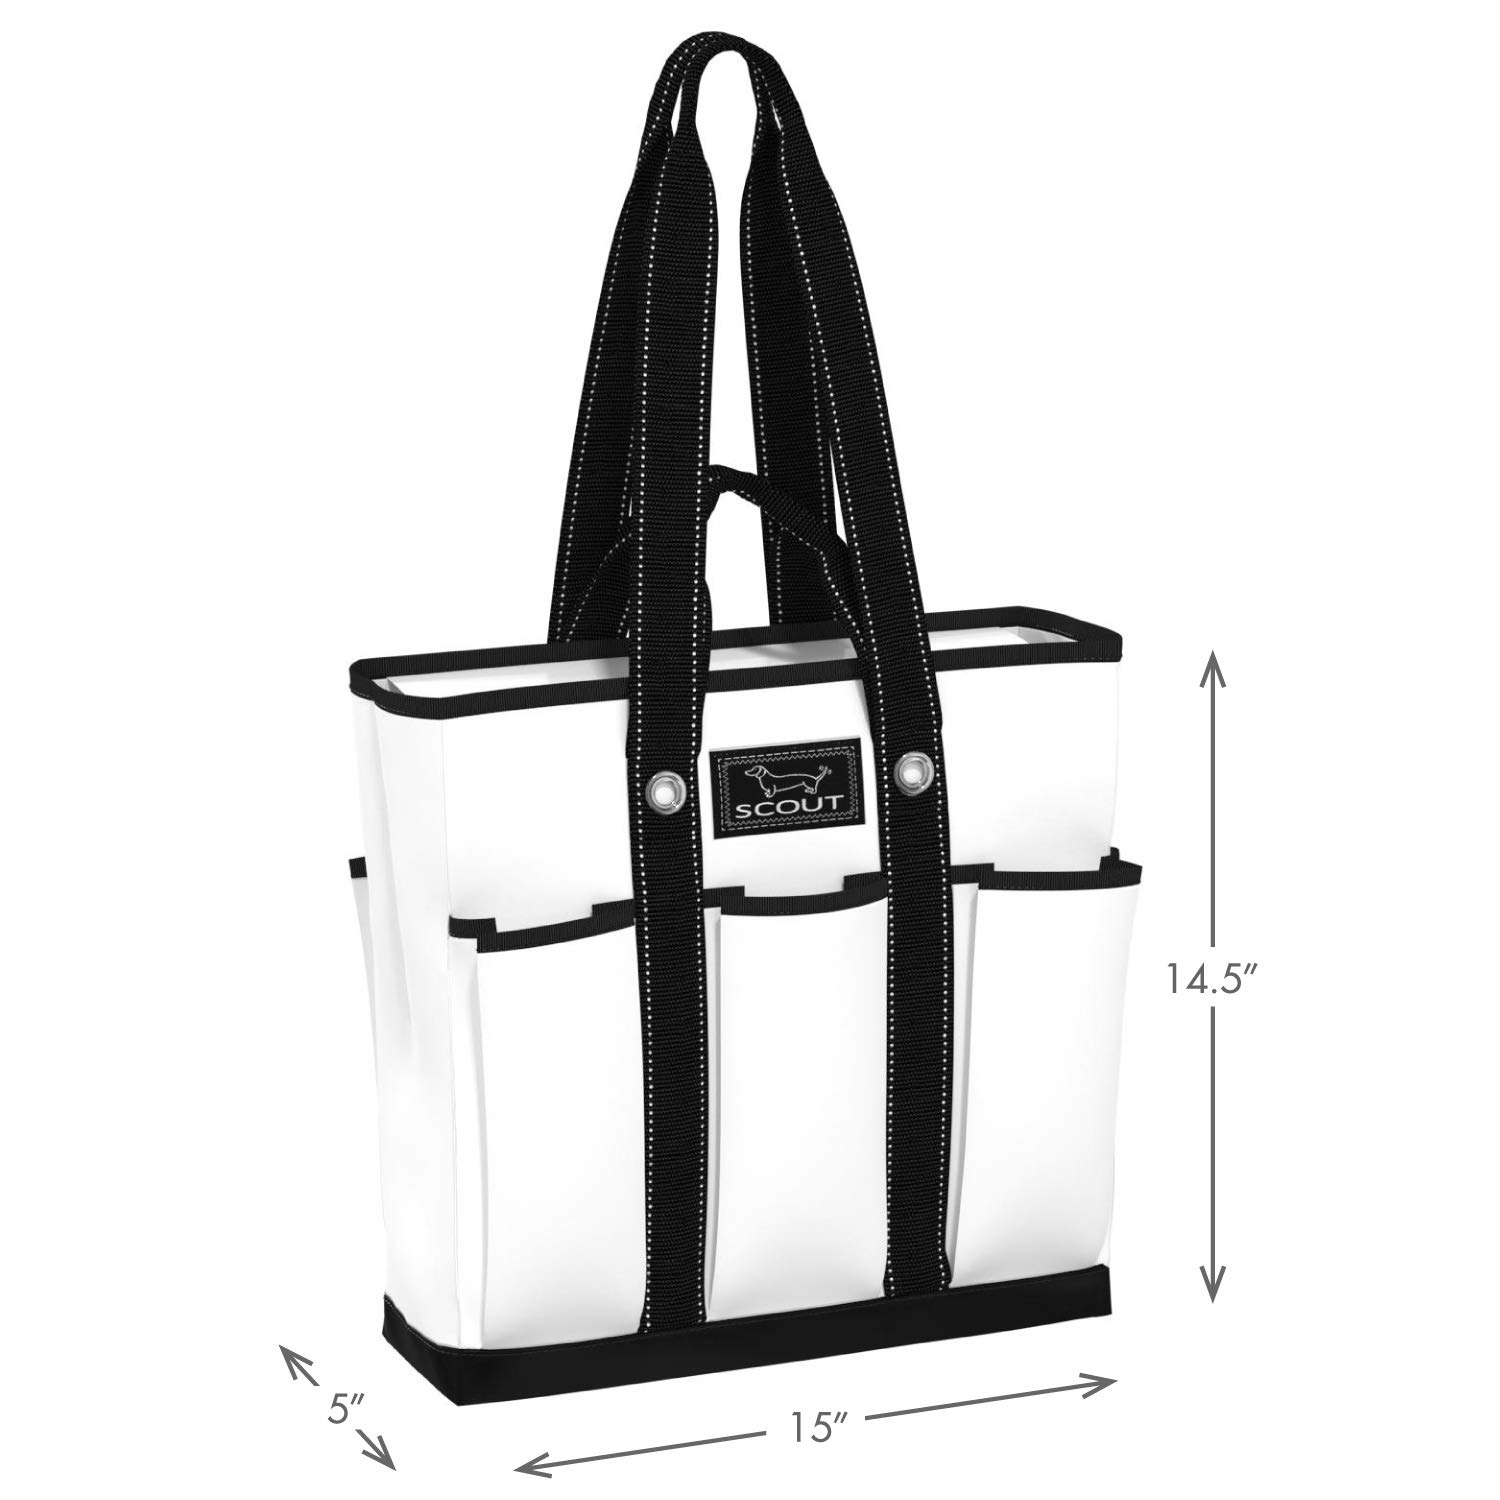 43b4096a65a6 SCOUT Pocket Rocket, Large Tote Bag for Women with 6 Exterior Pockets and  Interior Zippered Compartment, Perfect Utility Tote Bag with Pockets for ...